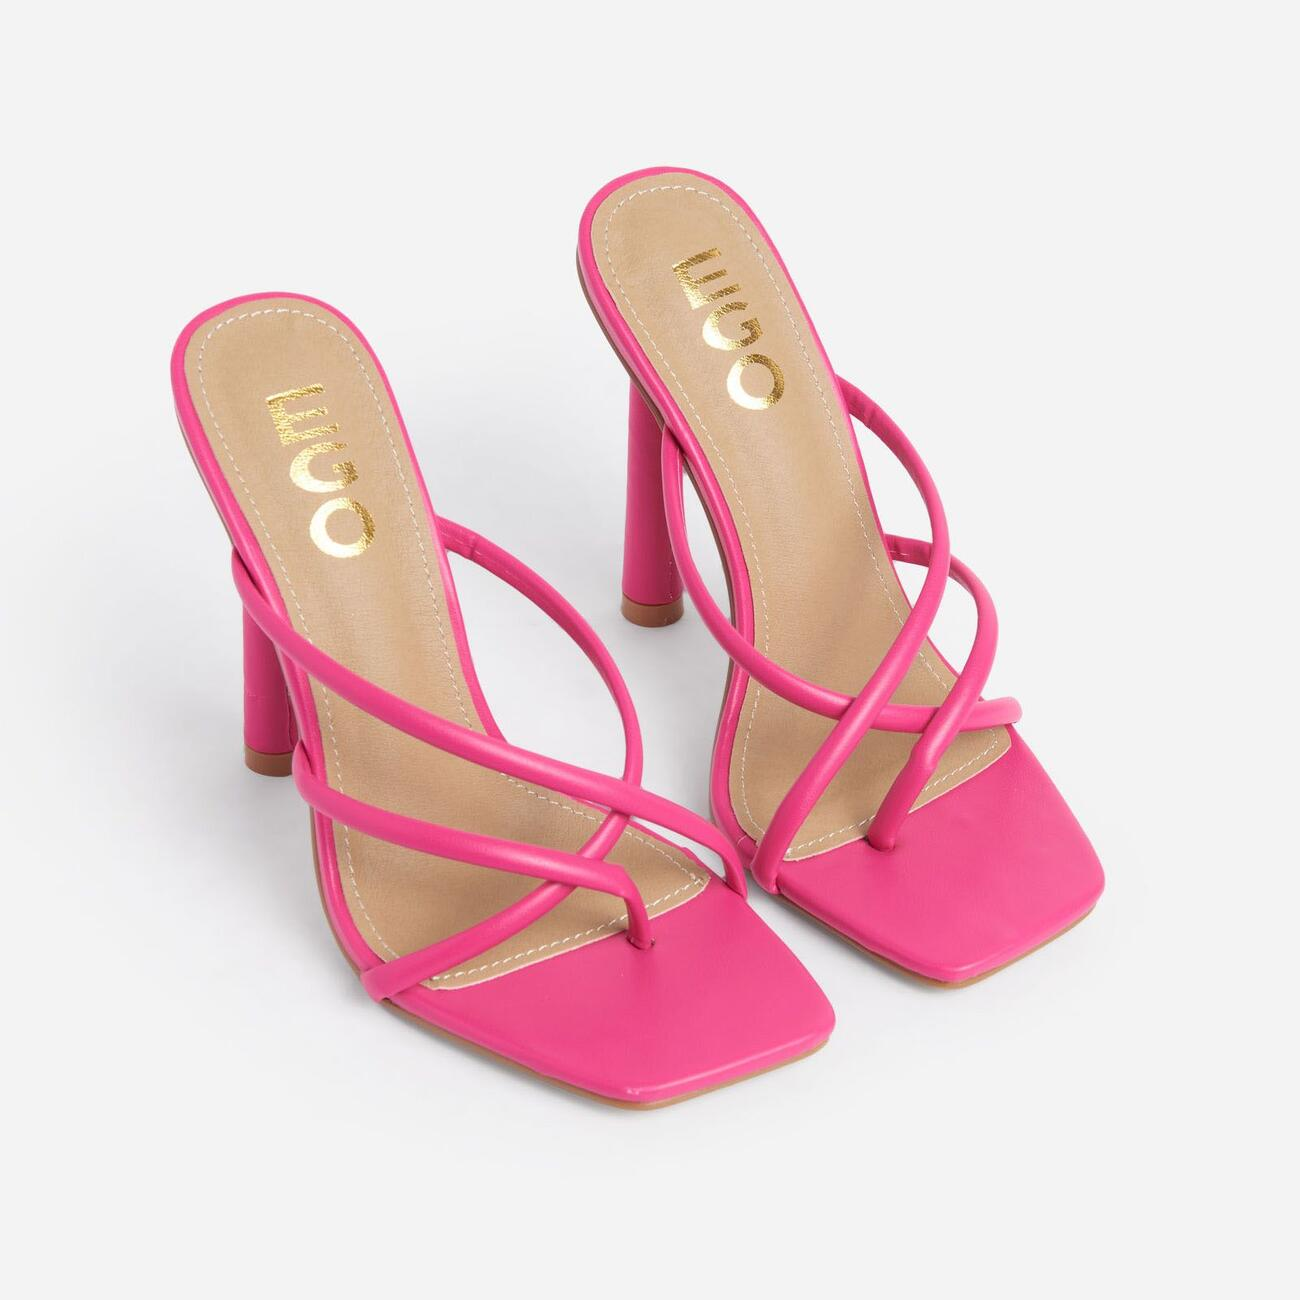 Playa Strappy Square Toe Heel Mule In Pink Faux Leather Image 2